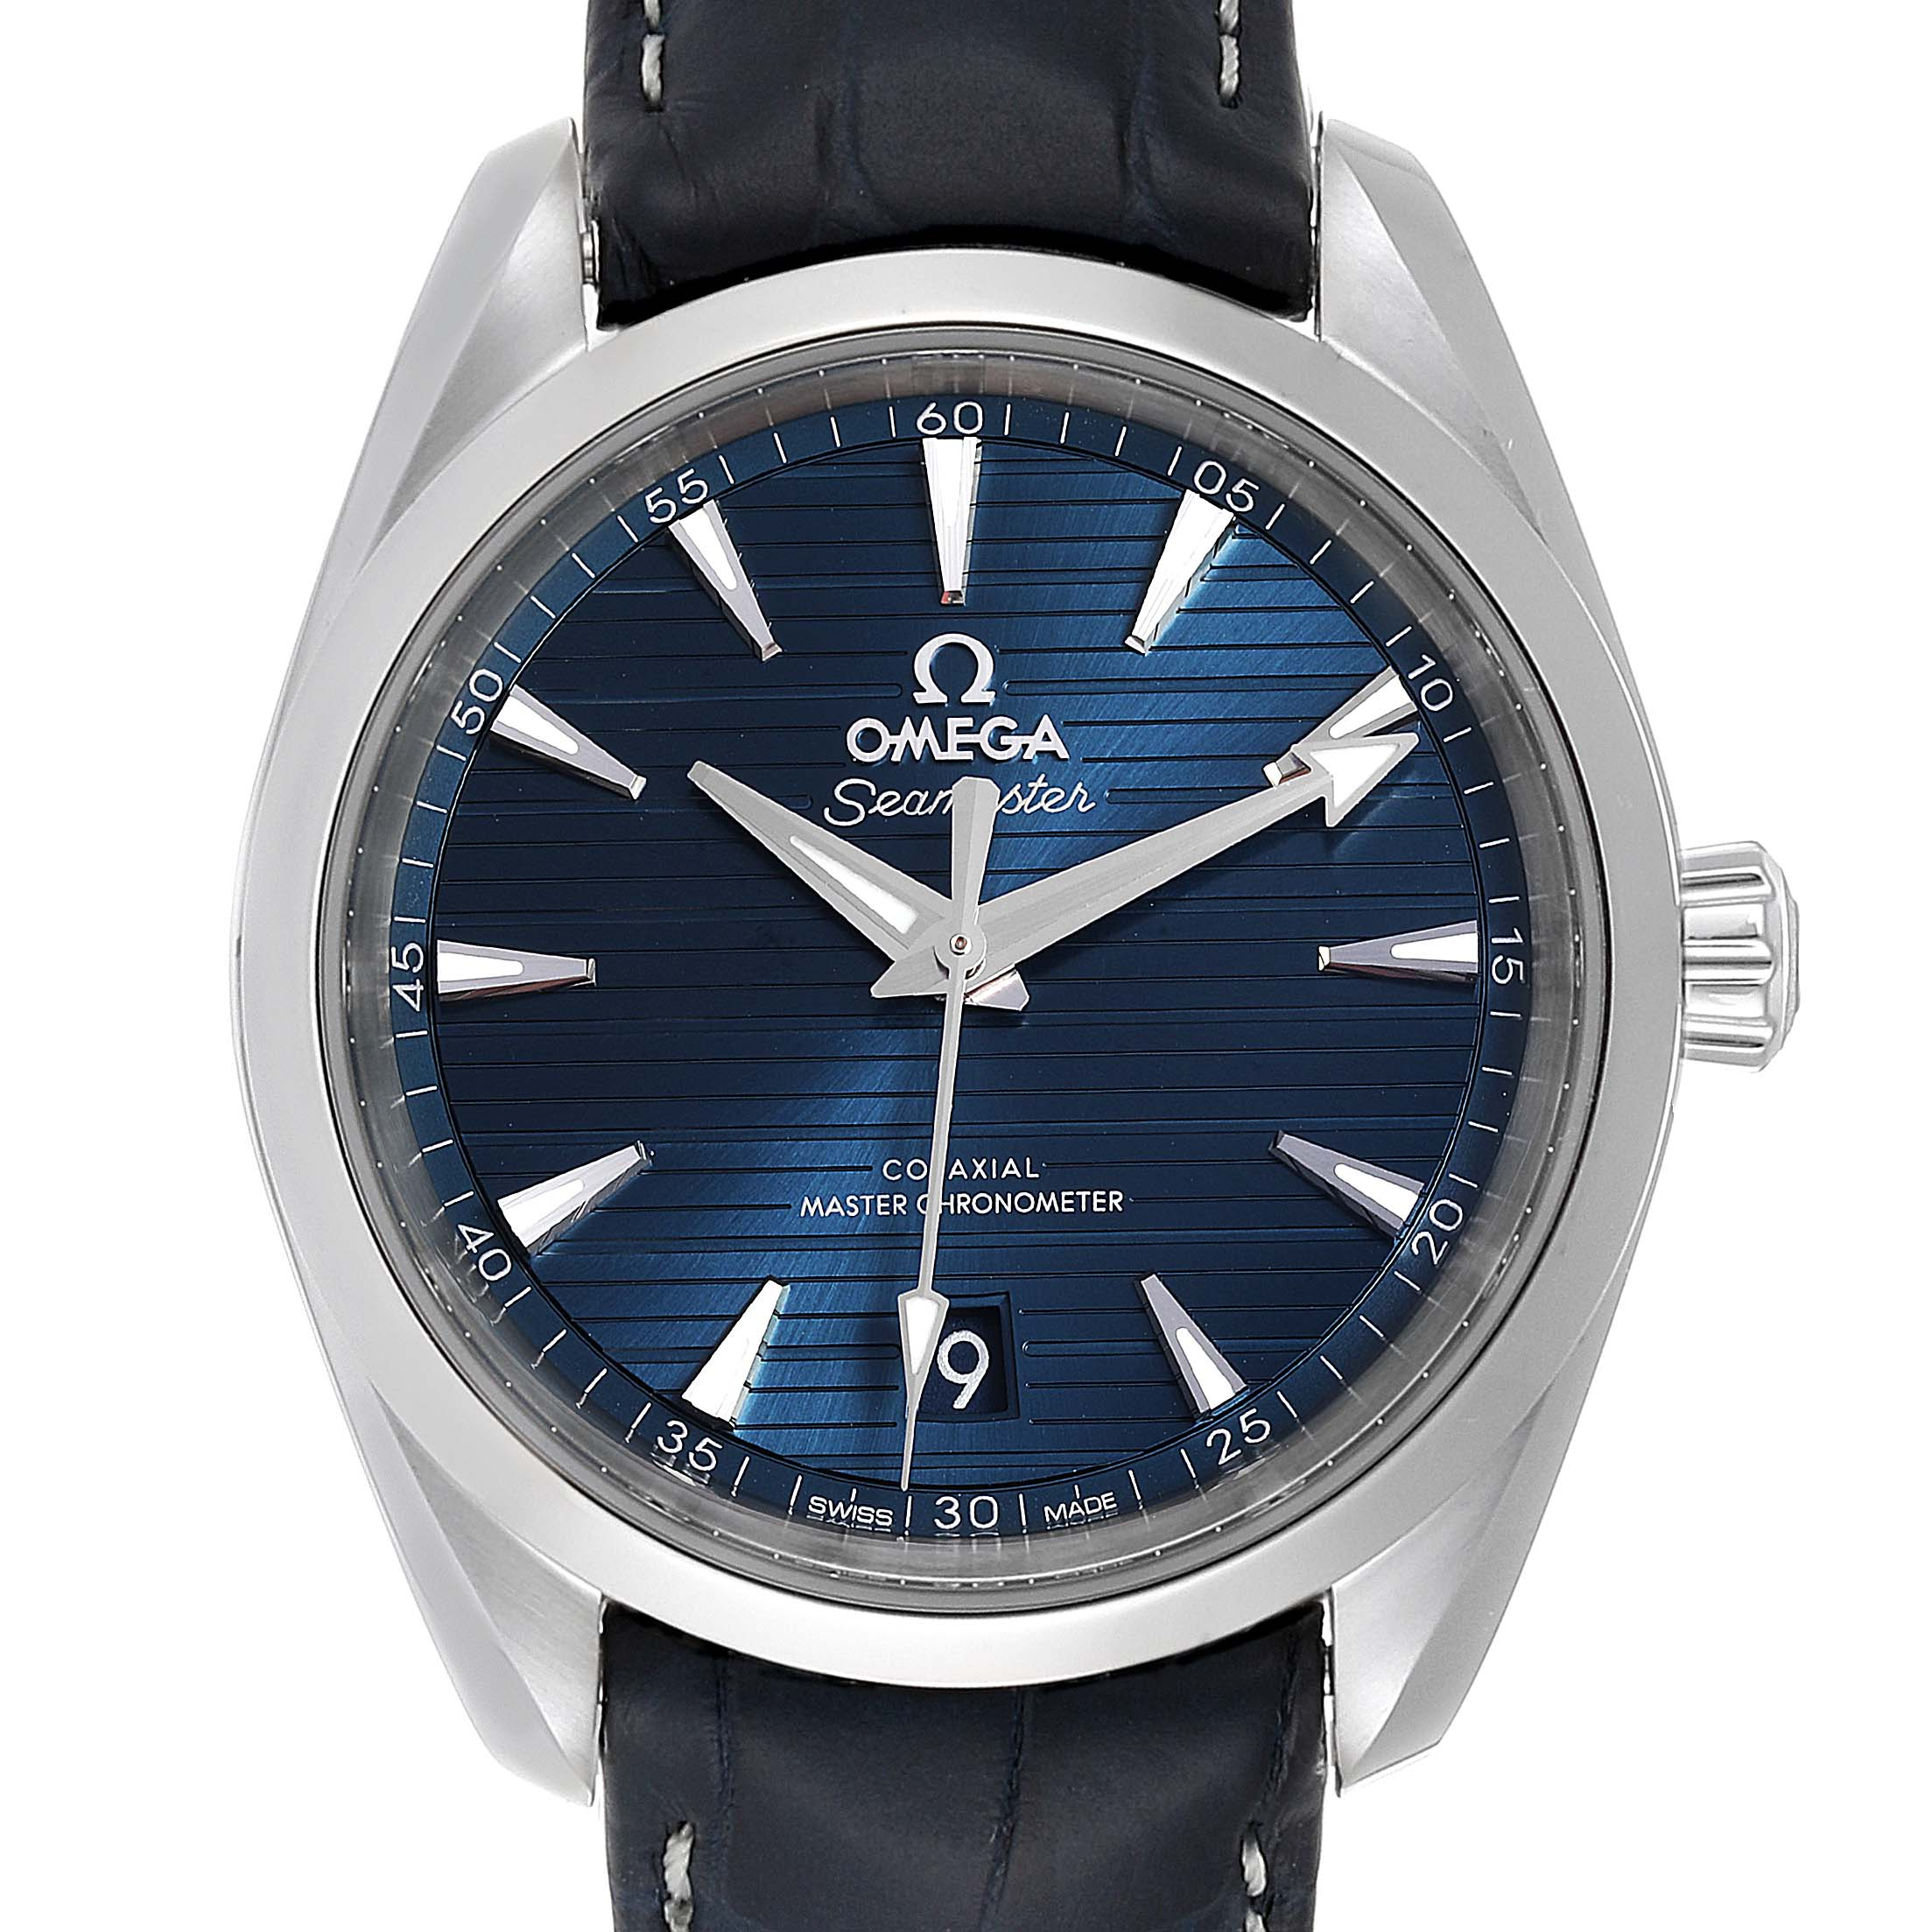 Omega Seamaster Aqua Terra Blue Dial Watch 220.13.38.20.03.001 Box Card SwissWatchExpo